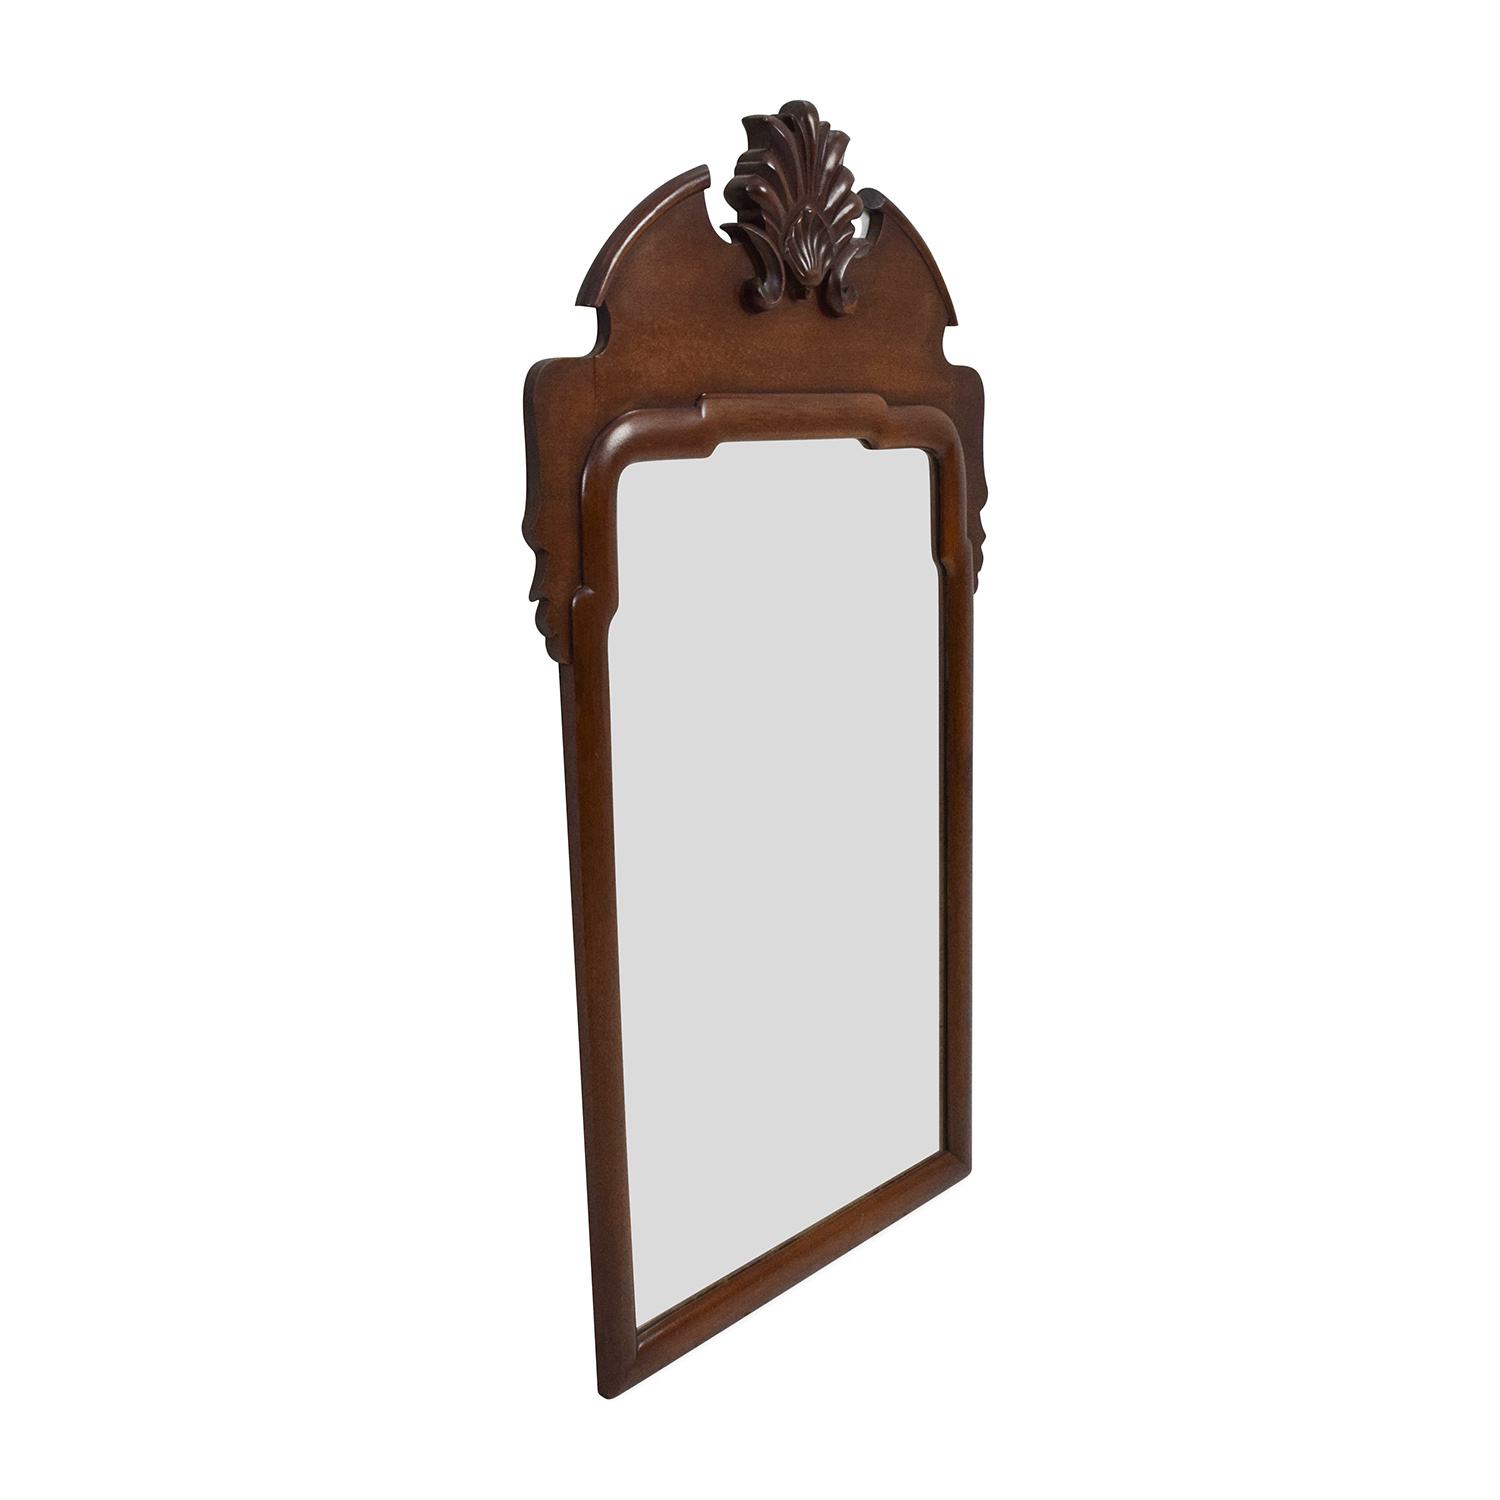 69 Off Unknown Brand Antique Wood Frame Mirror Decor